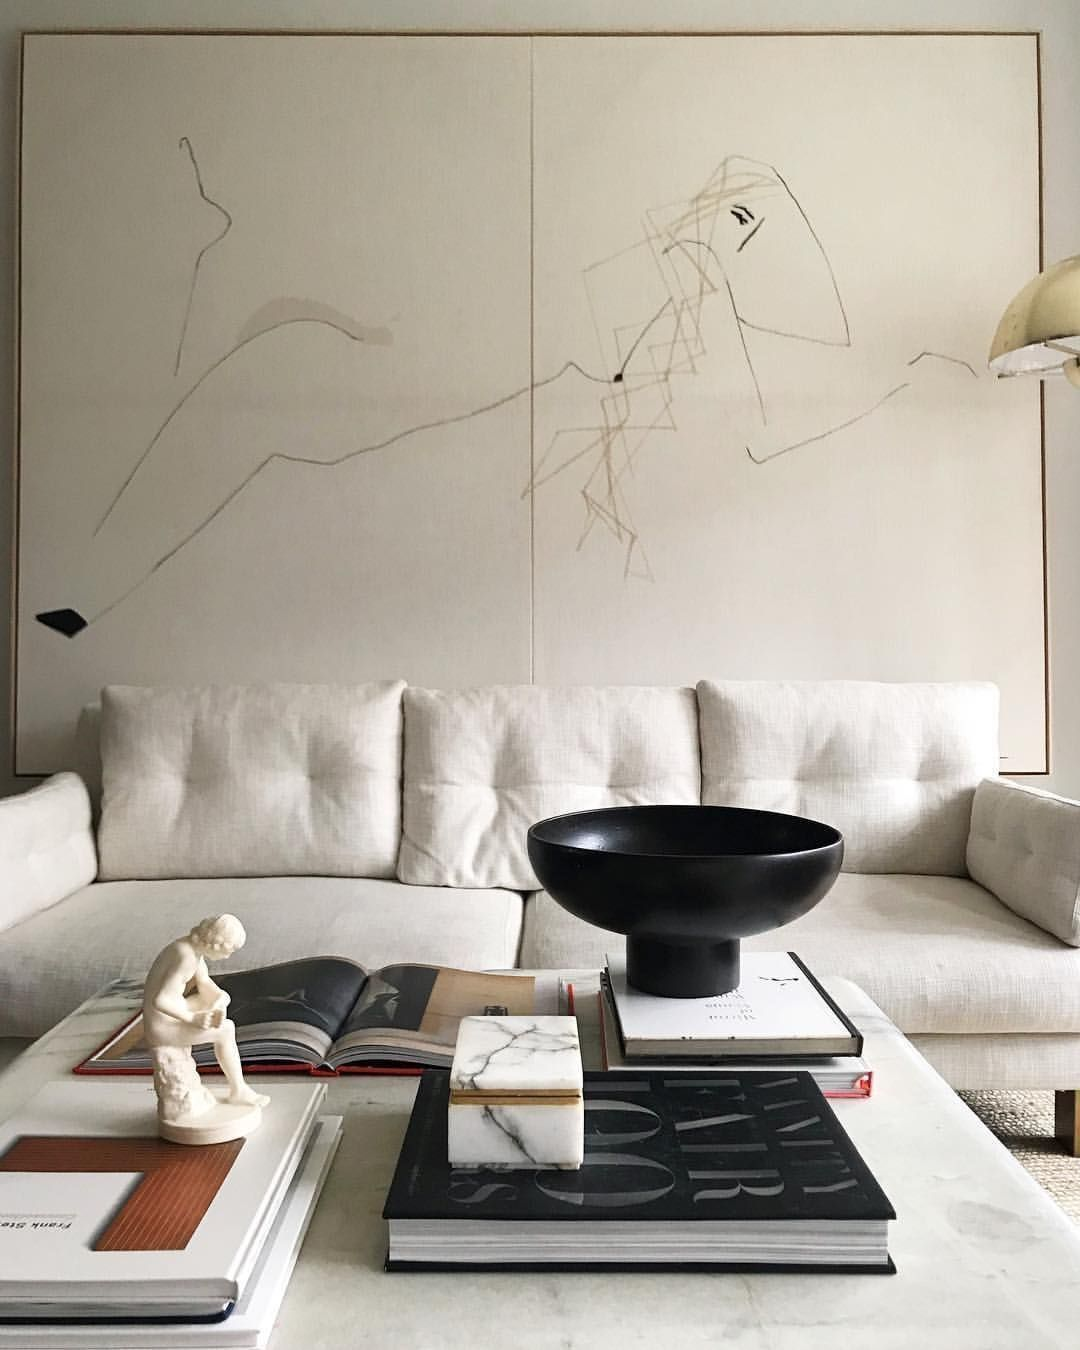 Pin by Treasures of NYC on HOME x TNYC in Pinterest Home